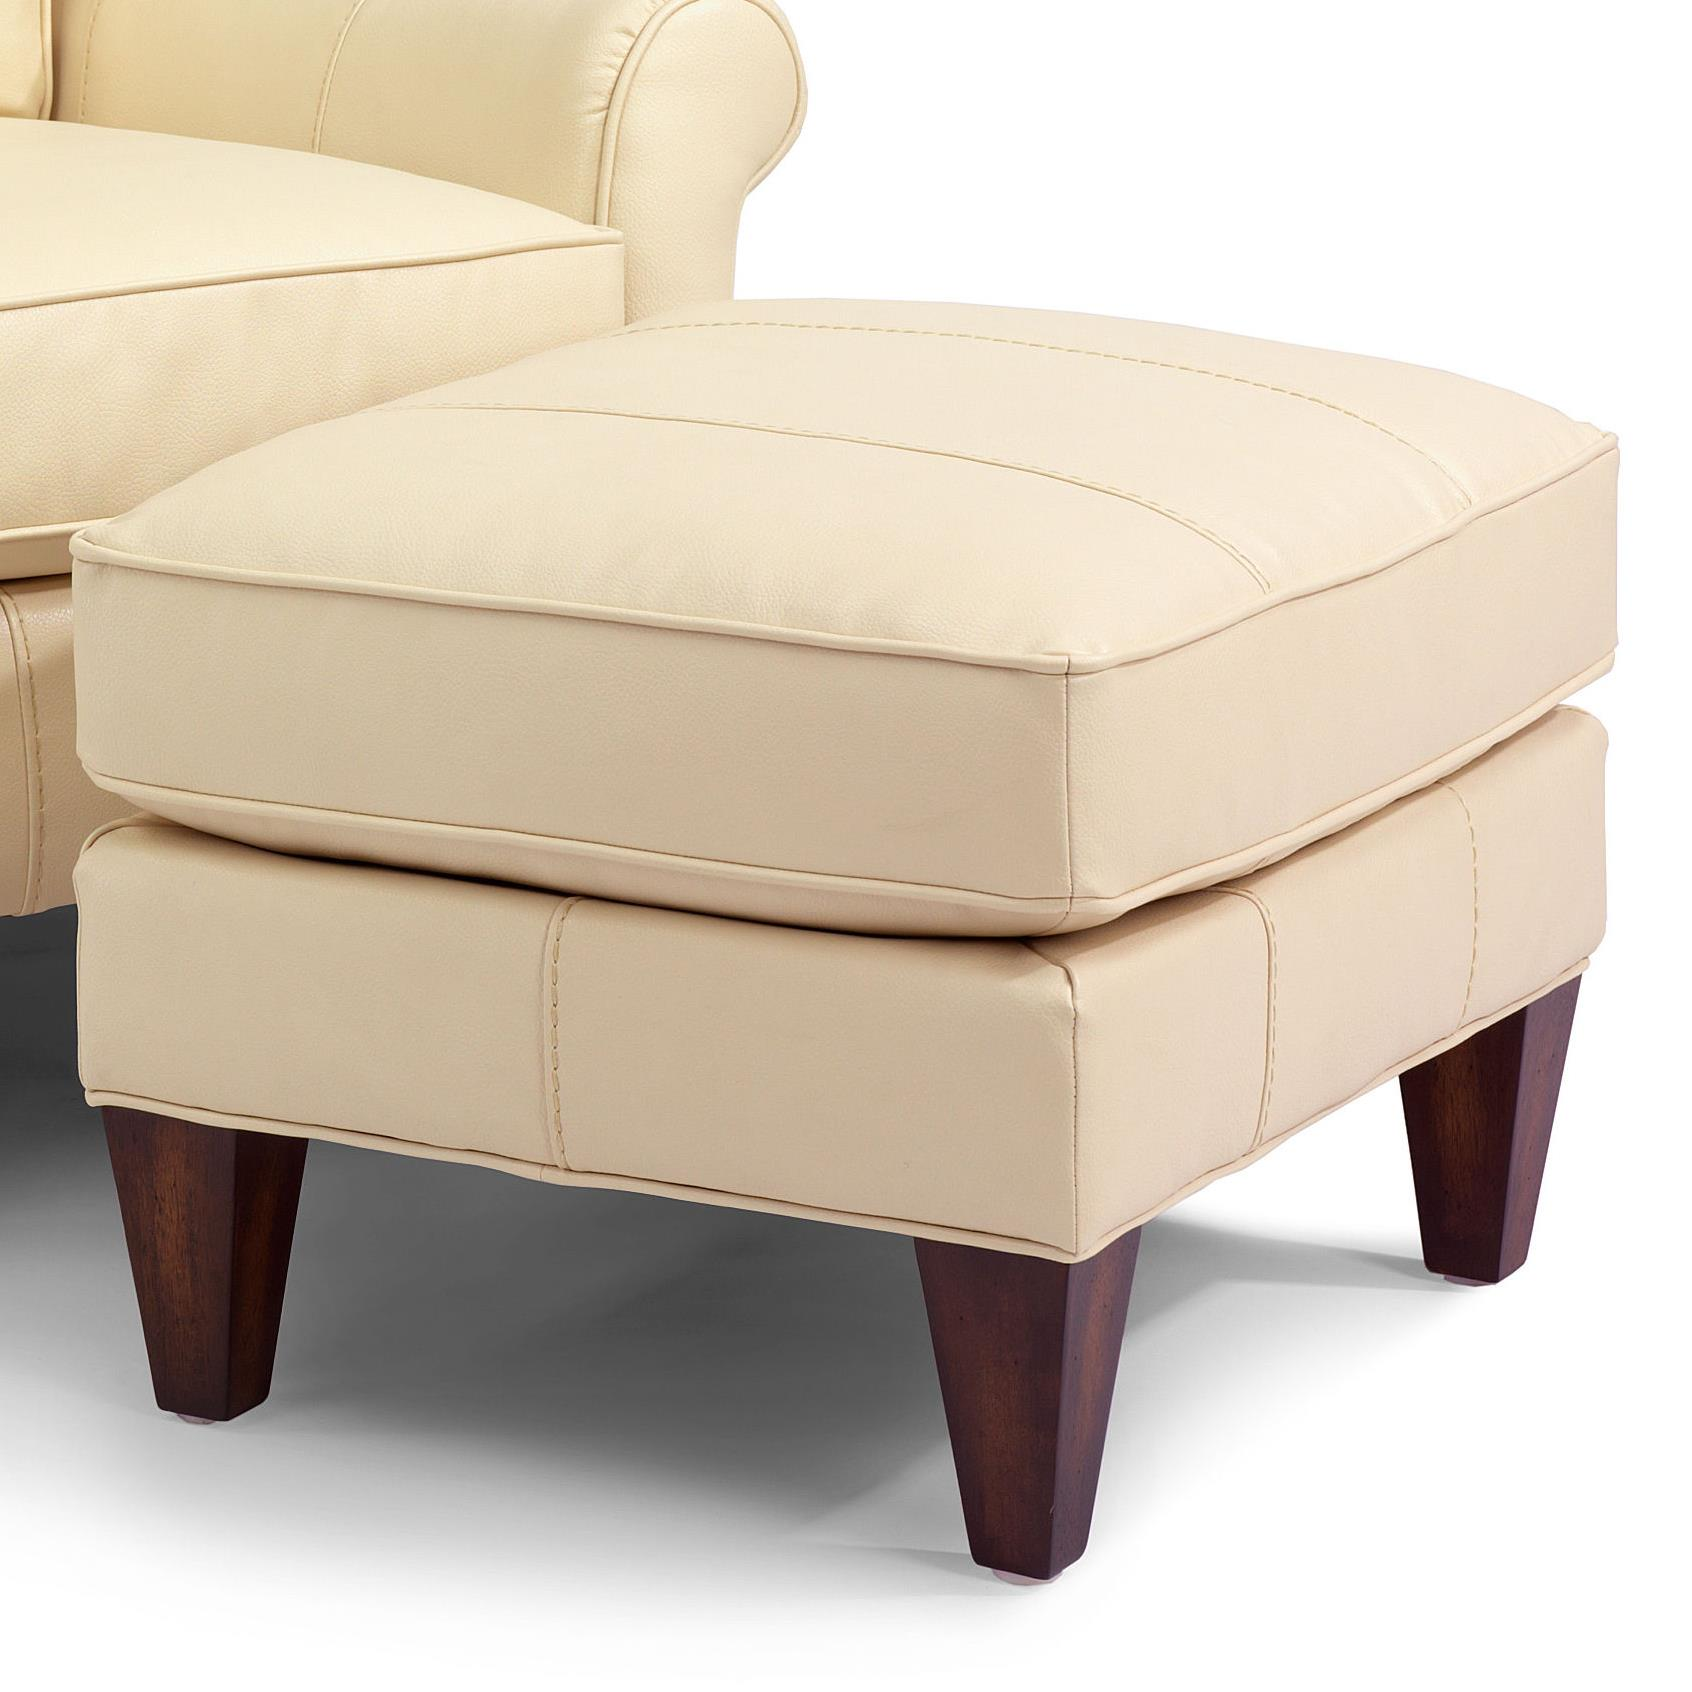 Flexsteel Accents Harvard Ottoman - Item Number: N009C-08